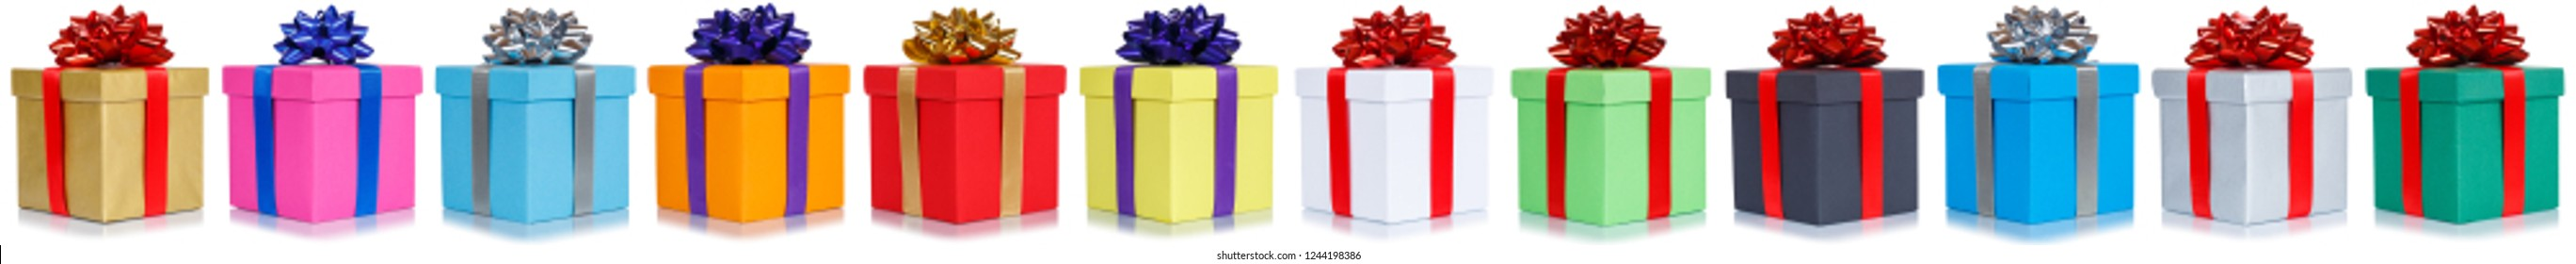 Gifts presents Christmas birthday gift present in a row isolated on a white background